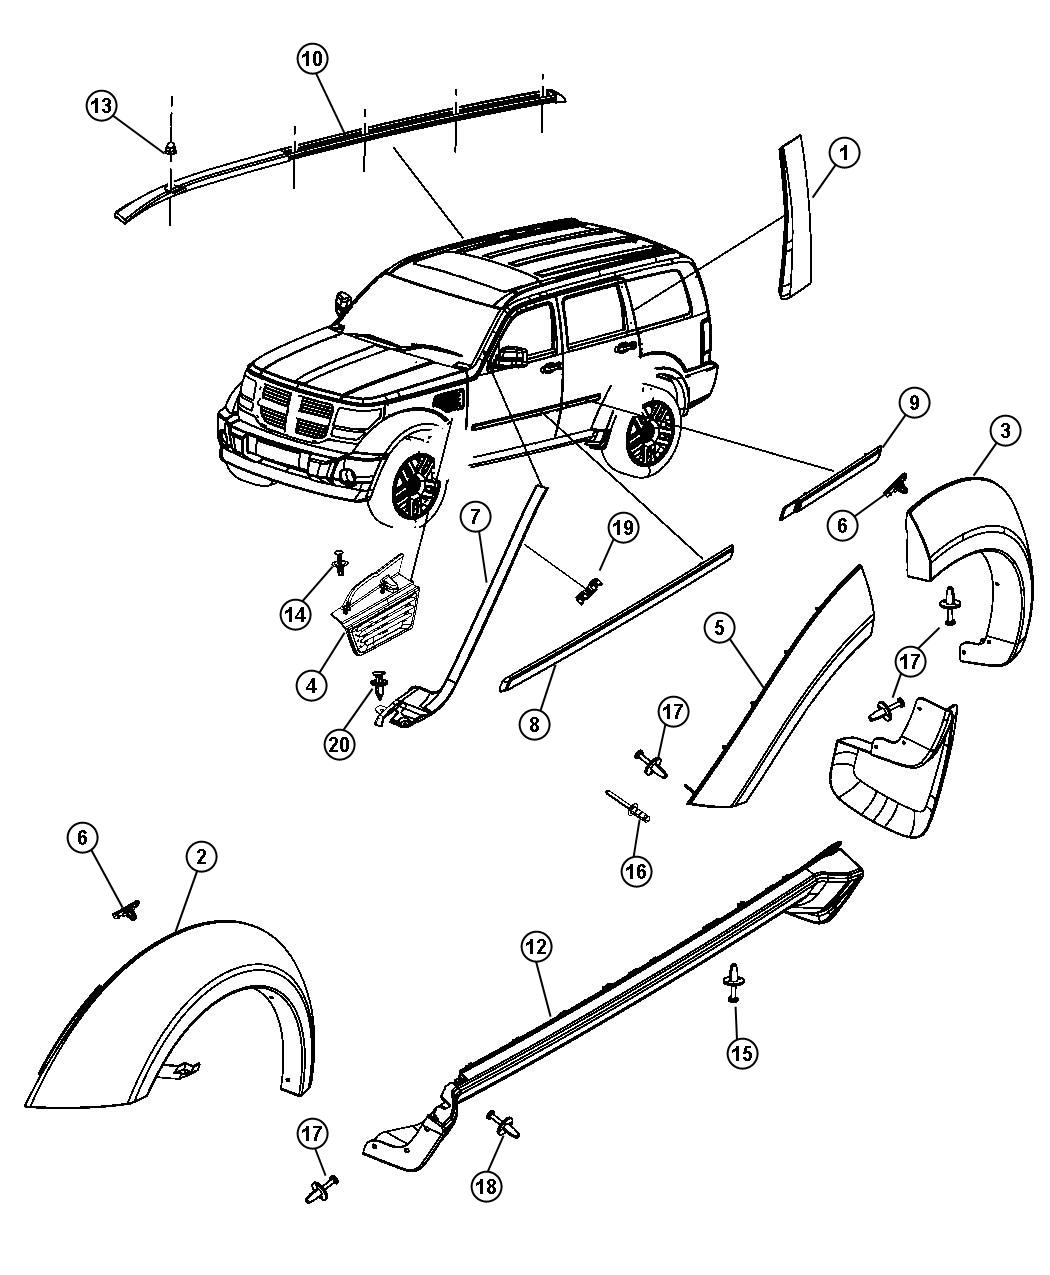 77A8252A3932165 besides ShowAssembly further Mopar Luggage Rack 1jq42rxfac in addition 94 Mazda B2300 Wiring Diagram in addition Roof Rail Install. on dodge nitro roof rack